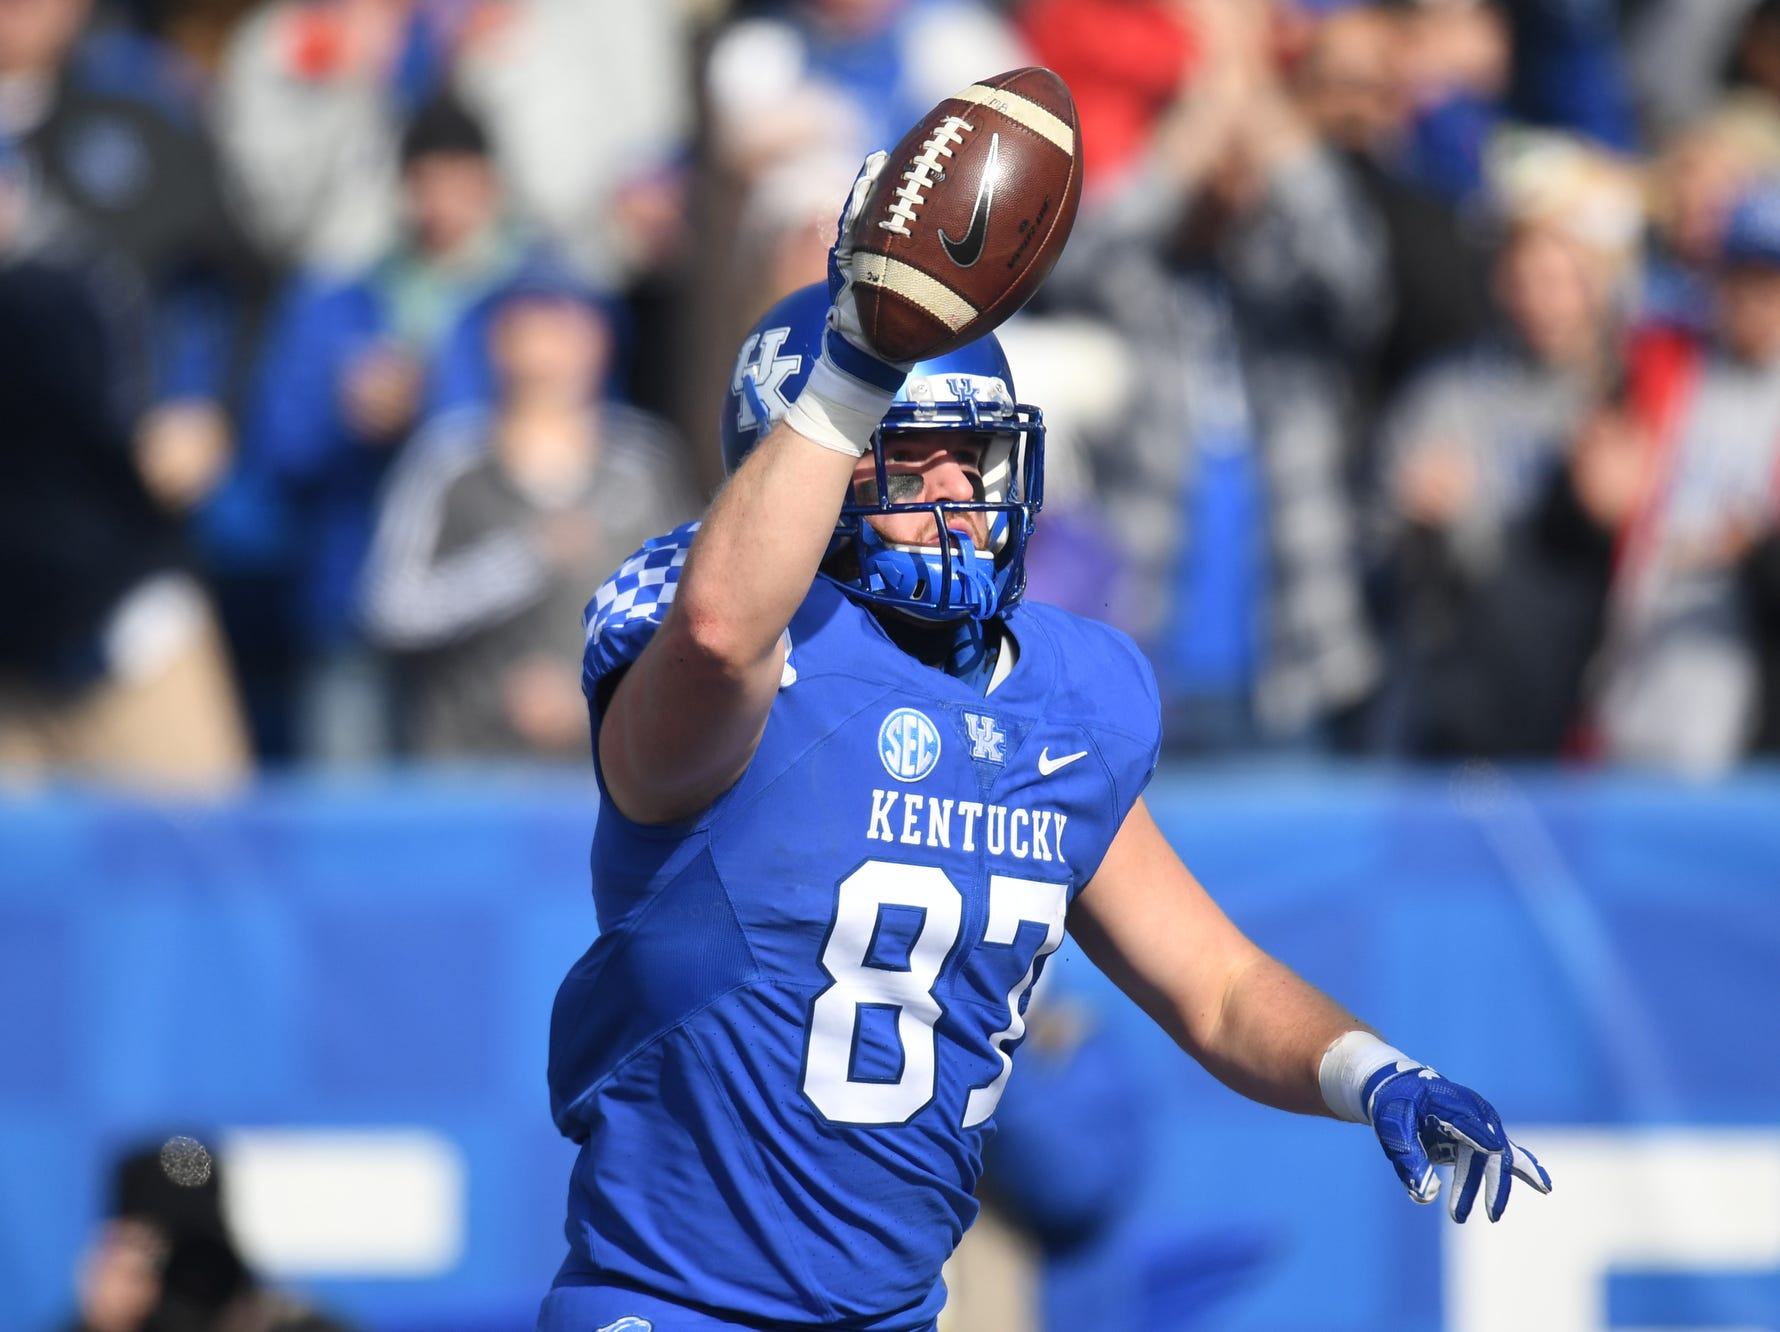 NFL draft workouts 'all cake' for Kentucky's C.J. Conrad after heart issue